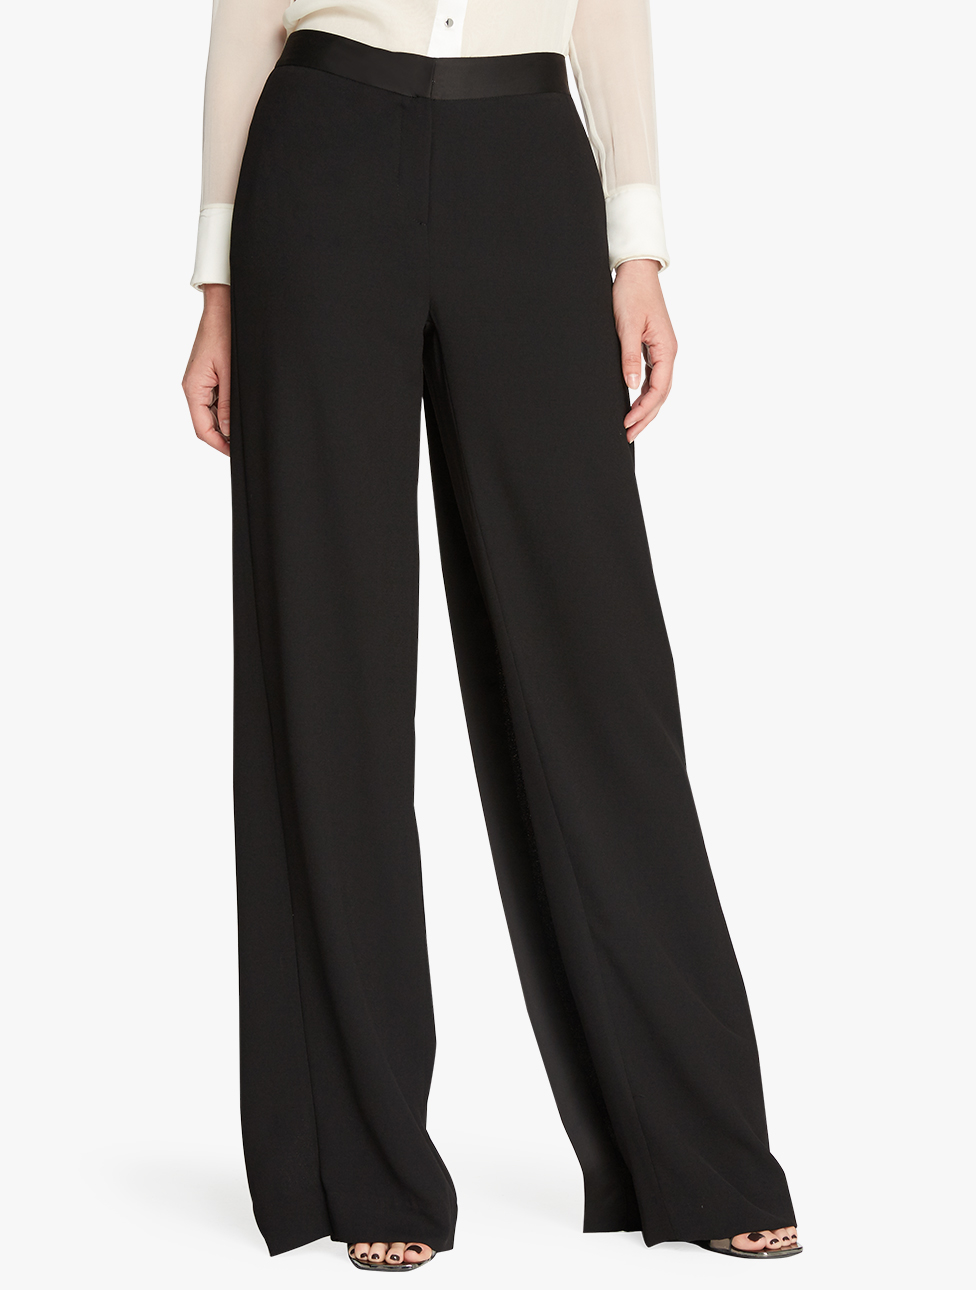 A pair of pants for every woman's style. Wide legged and comfortable pieces or skinny fits. Appliques, masculine cuts and original prints are key this season.